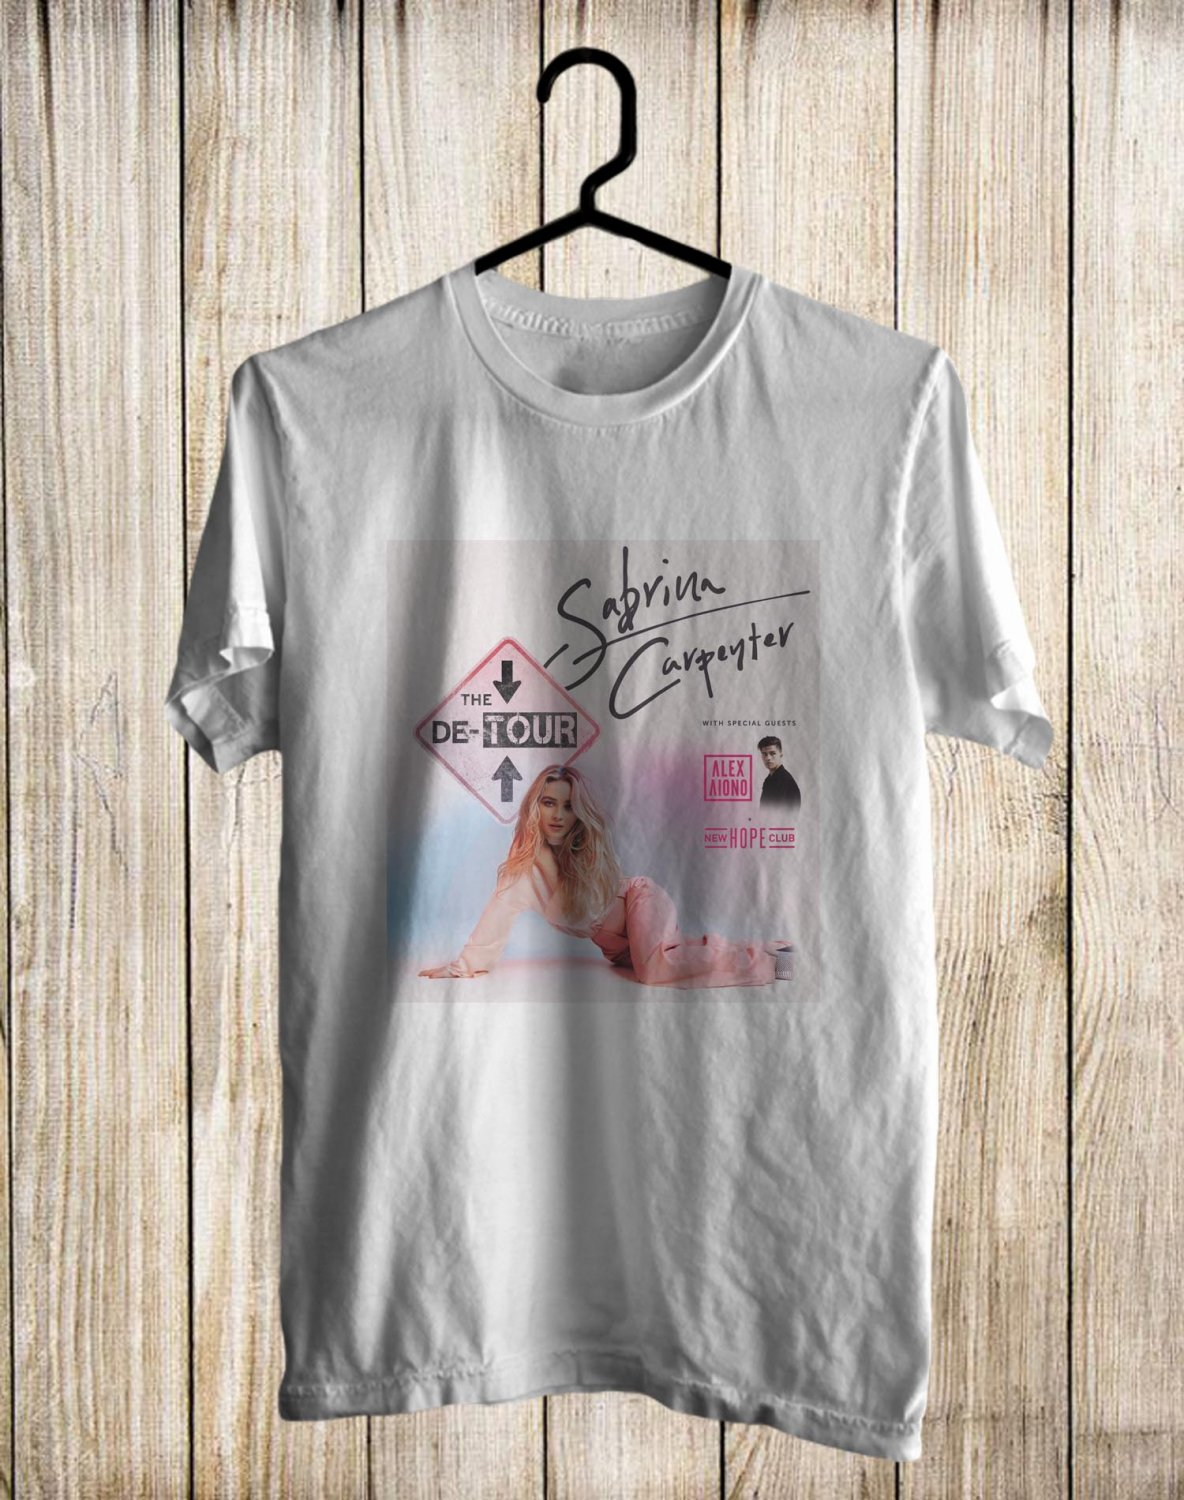 Sabrina Carpenter The De-Tour 2017 White Tee's Front Side by Complexart z1